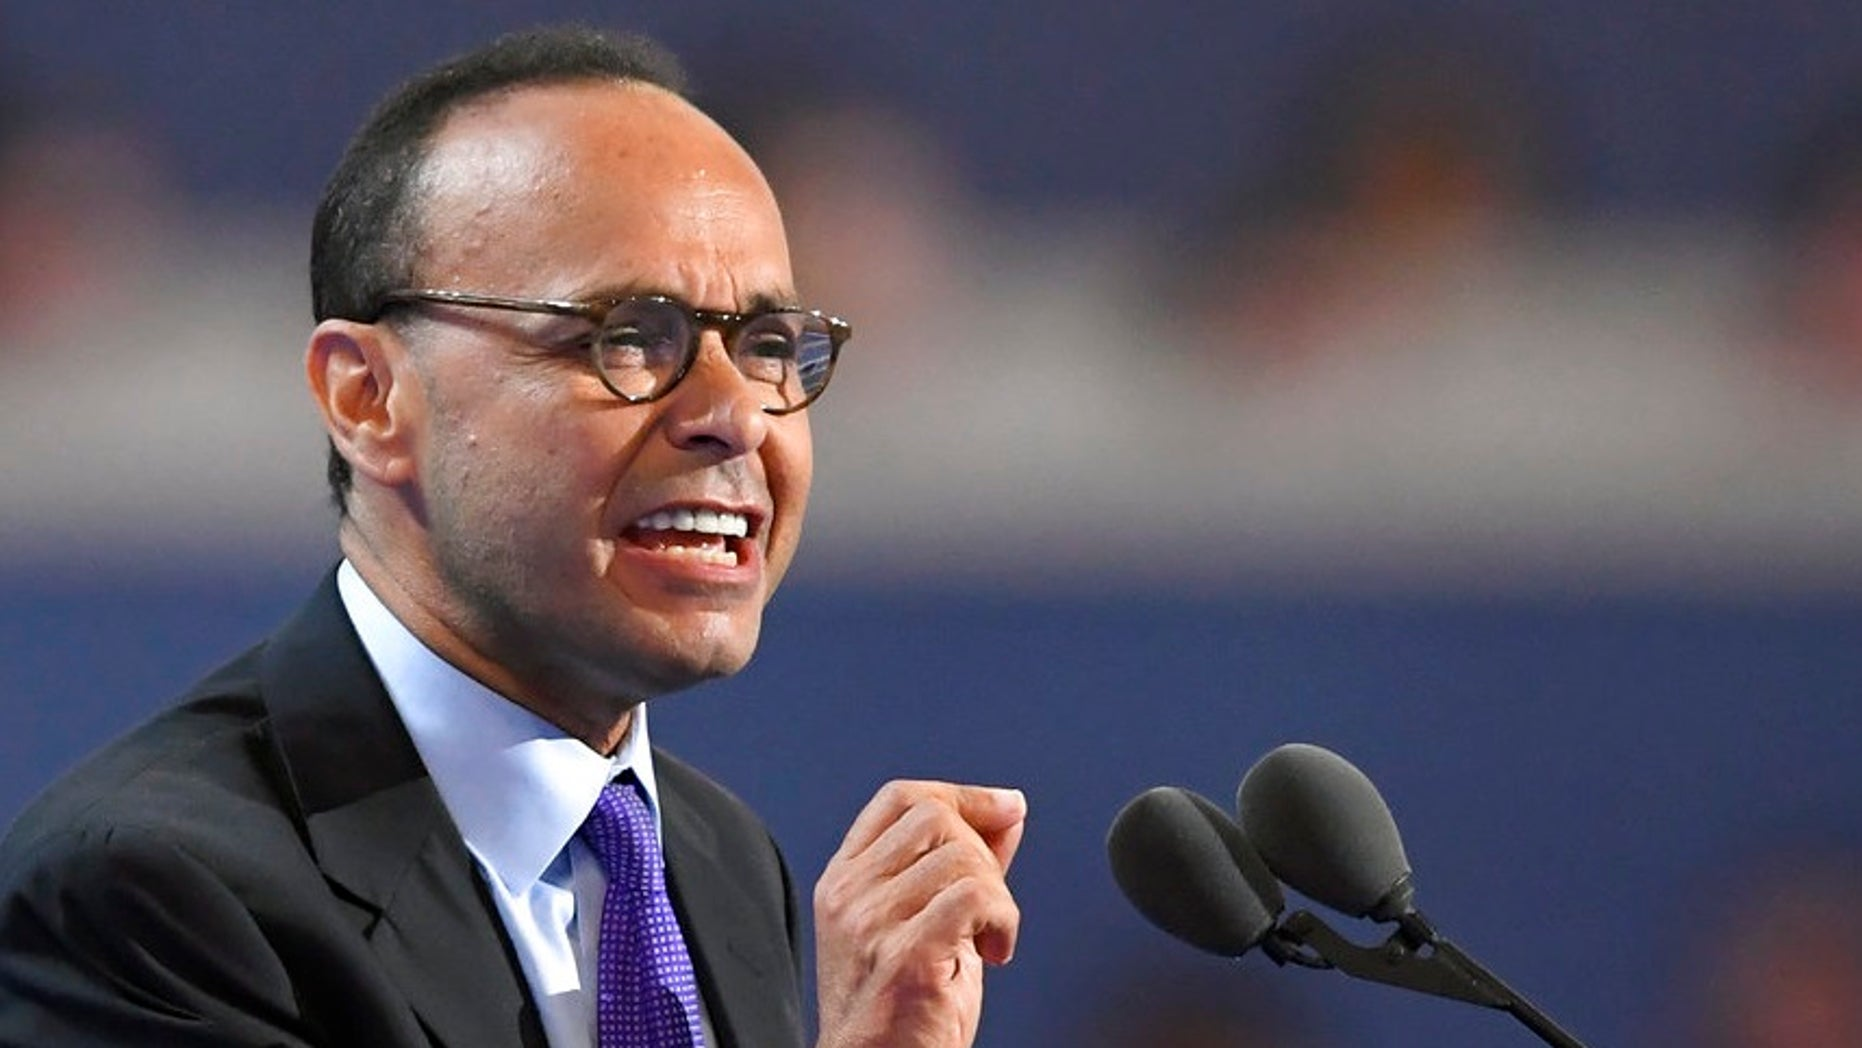 Illinois Democratic Rep. Luis Gutierrez derided President Trump's SOTU speech, saying it was translated from Russian.